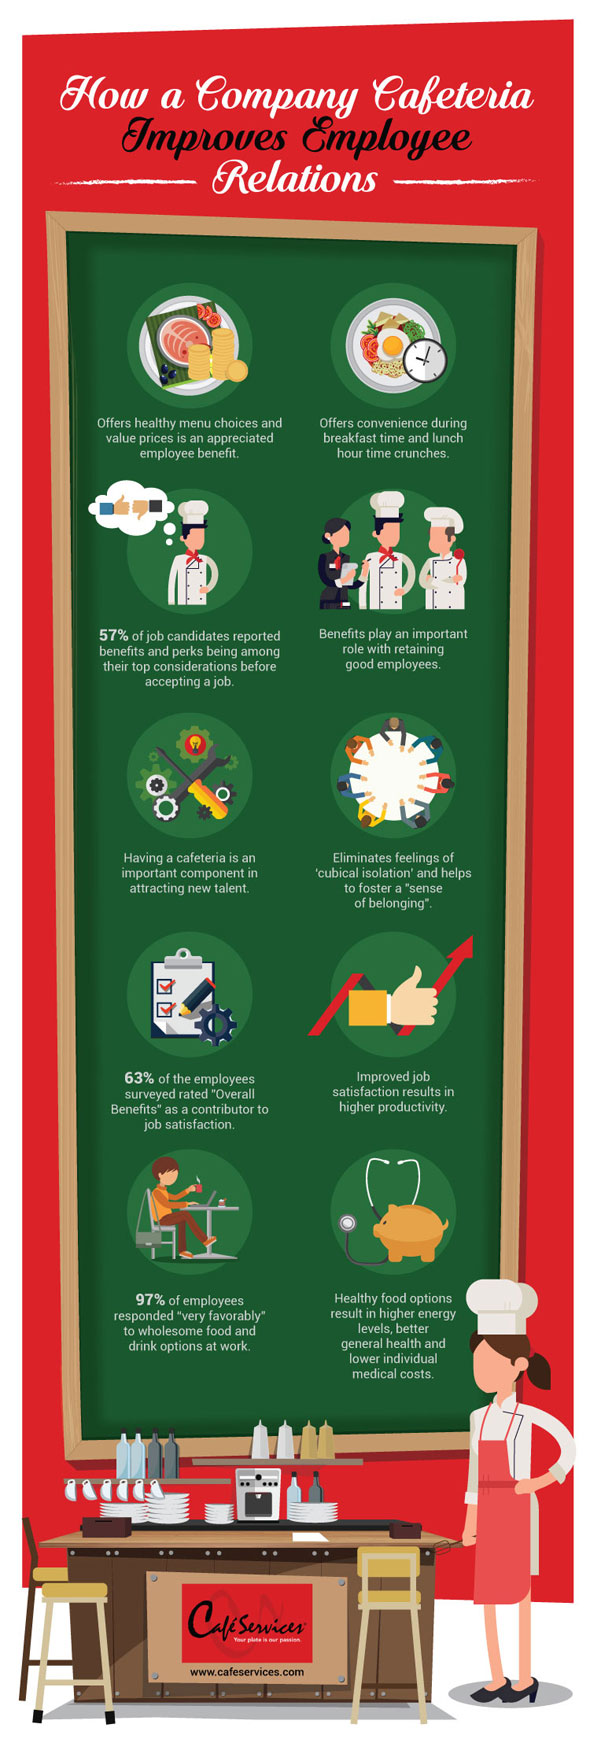 cafeteria-management-infographic